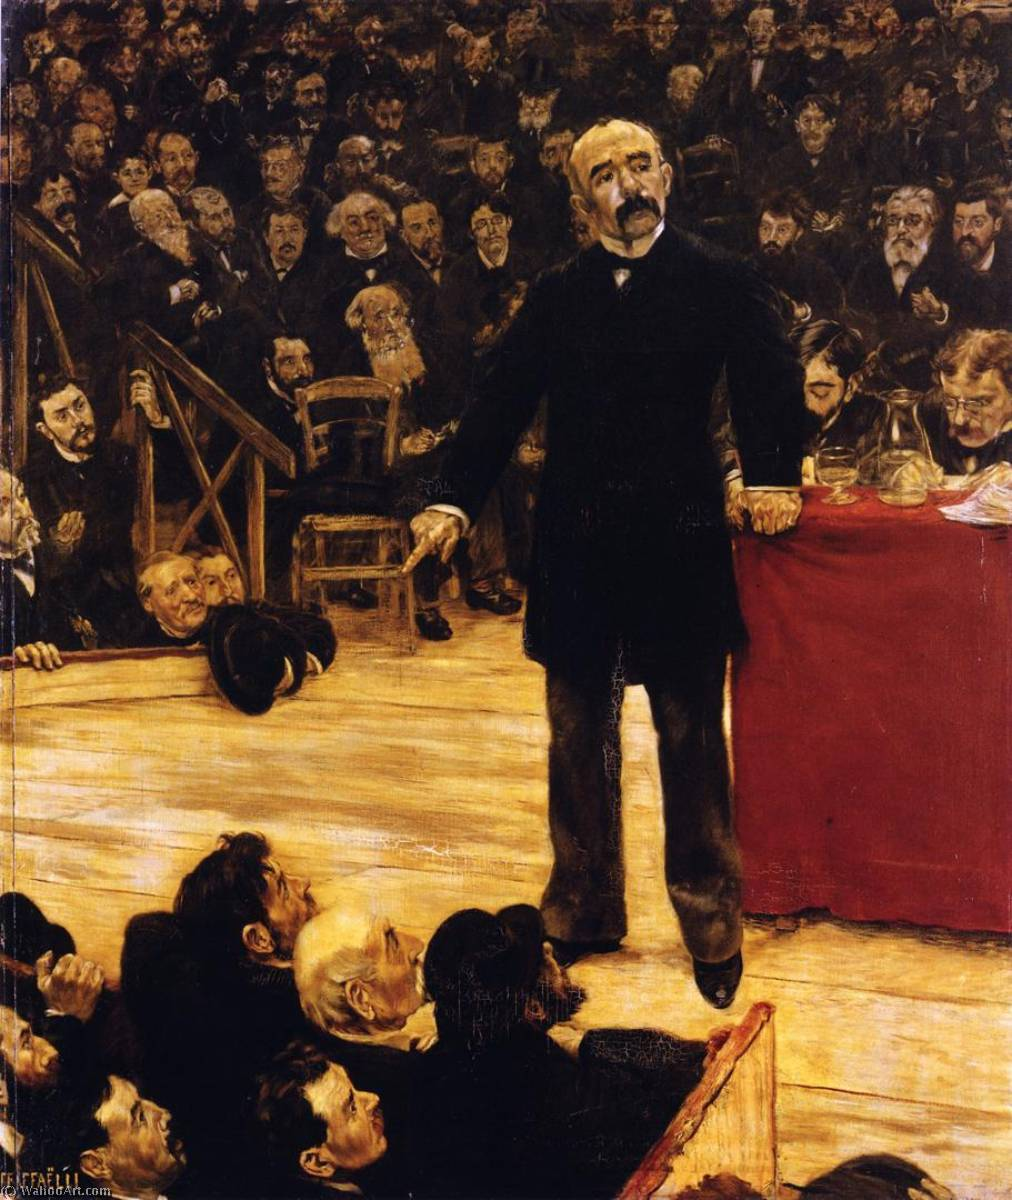 Georges Clemenceau Giving a Speech at the Cirque Fernando, 1883 by Jean-François Raffaelli (1850-1924, France) | Oil Painting | WahooArt.com